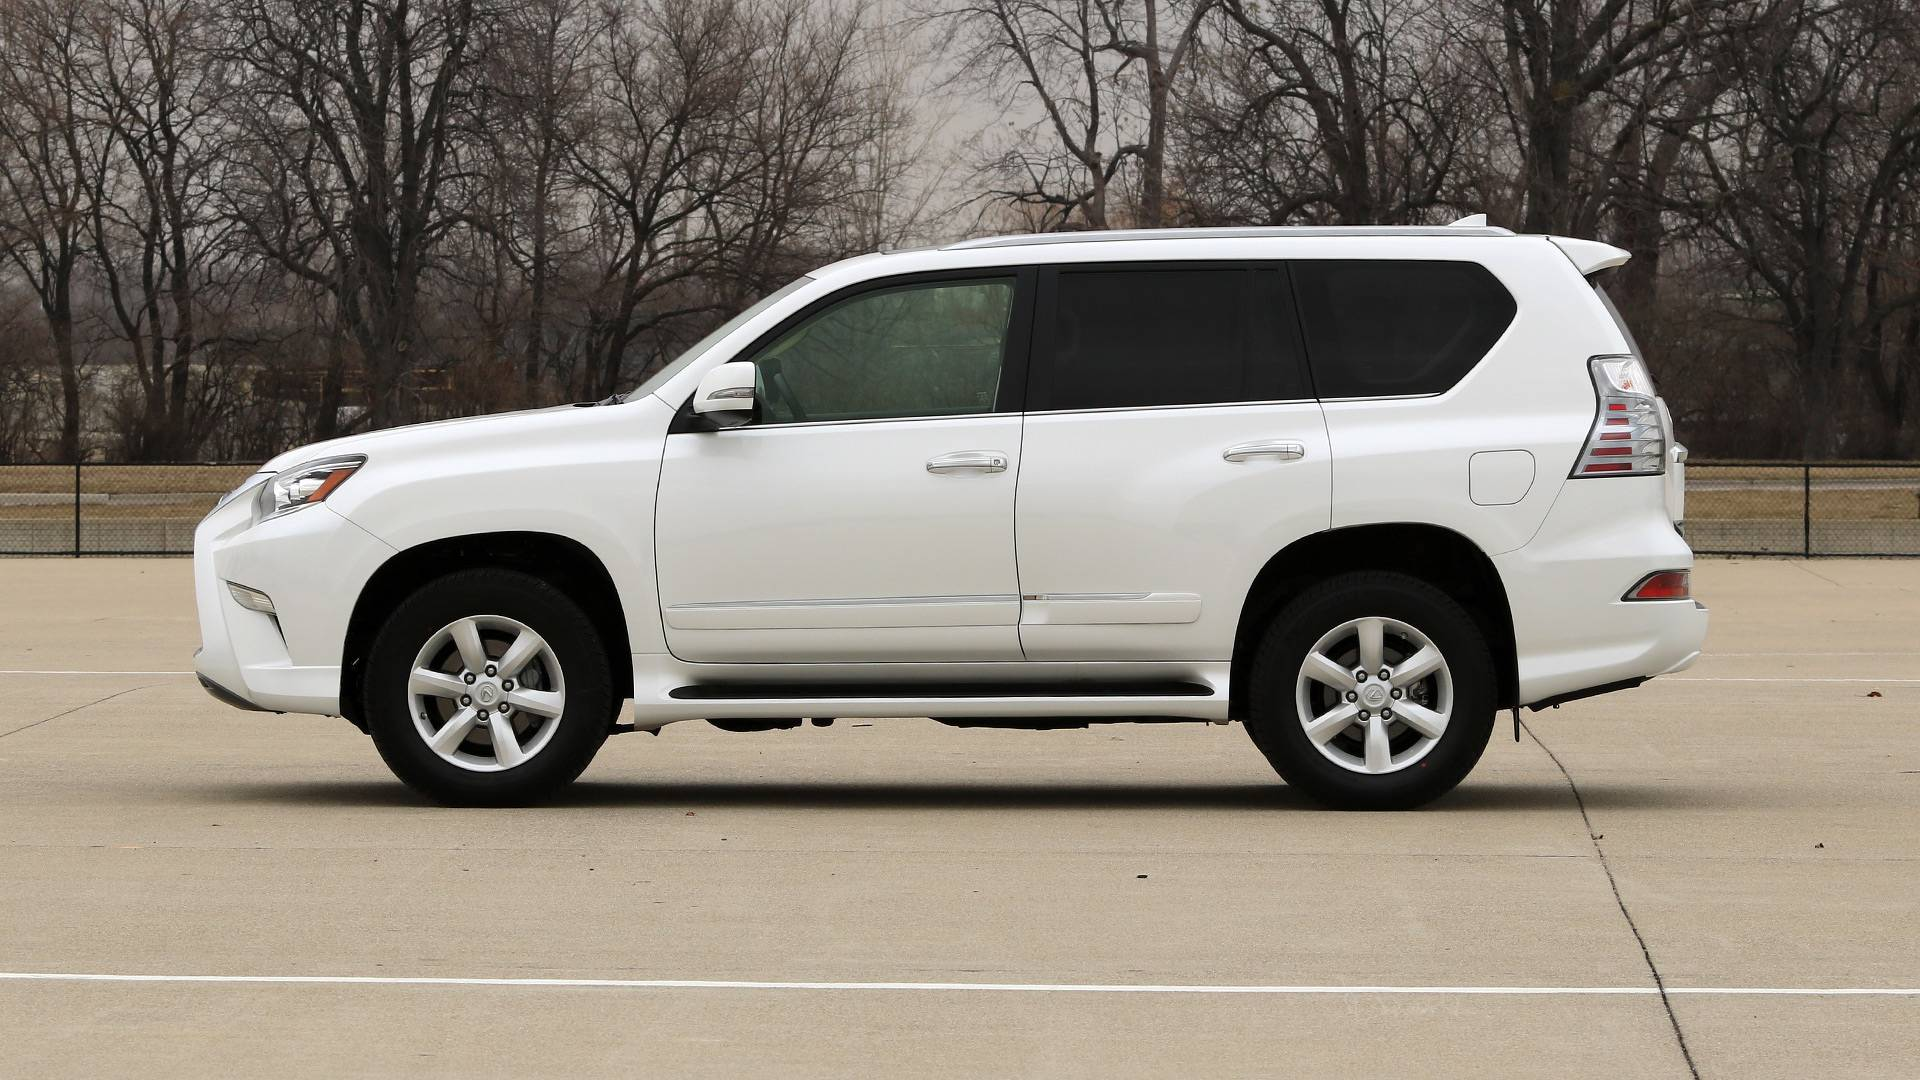 luxury saugus at wheel lexus gx navigation mall cars used drive all auto